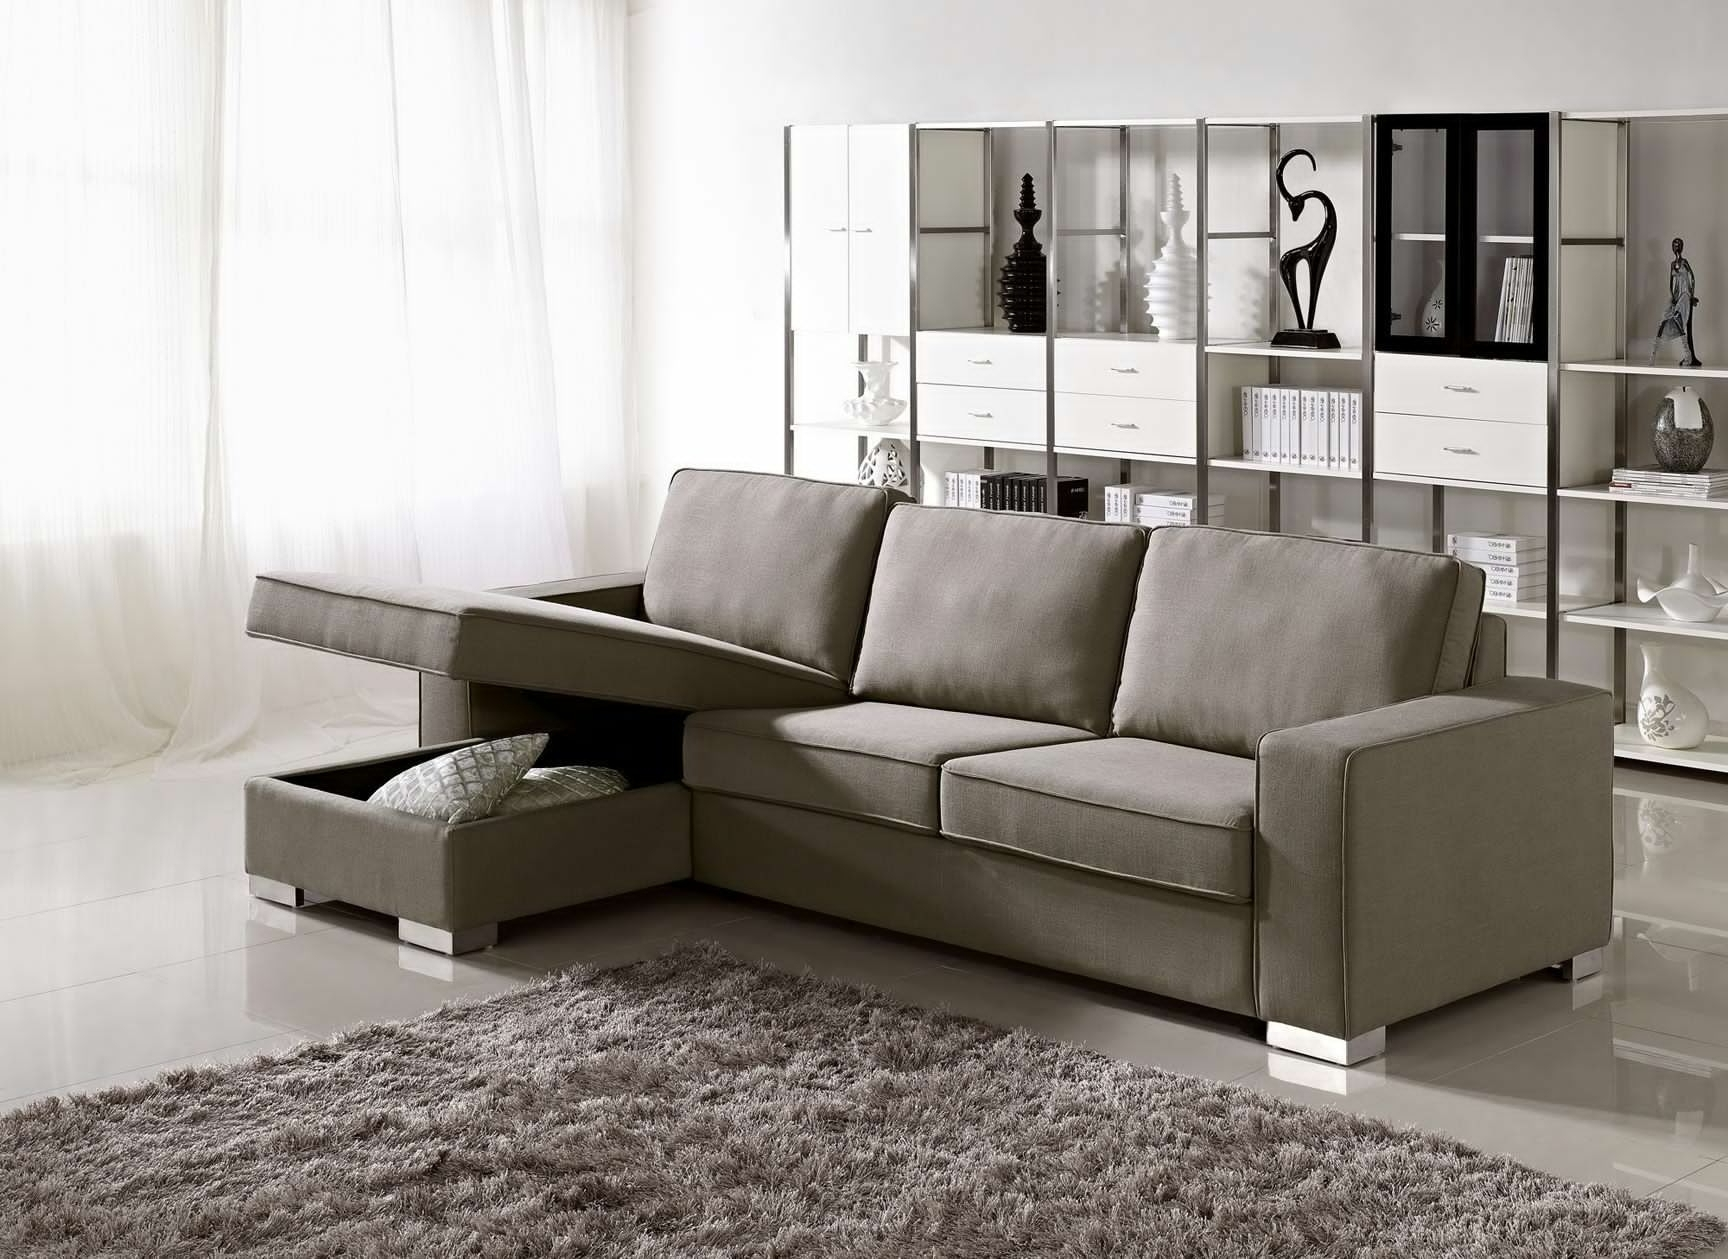 Most Current Kelowna Sectional Sofas Within Furniture : Corner Couch Images Sectional Couch 3D Model Sectional (View 11 of 15)